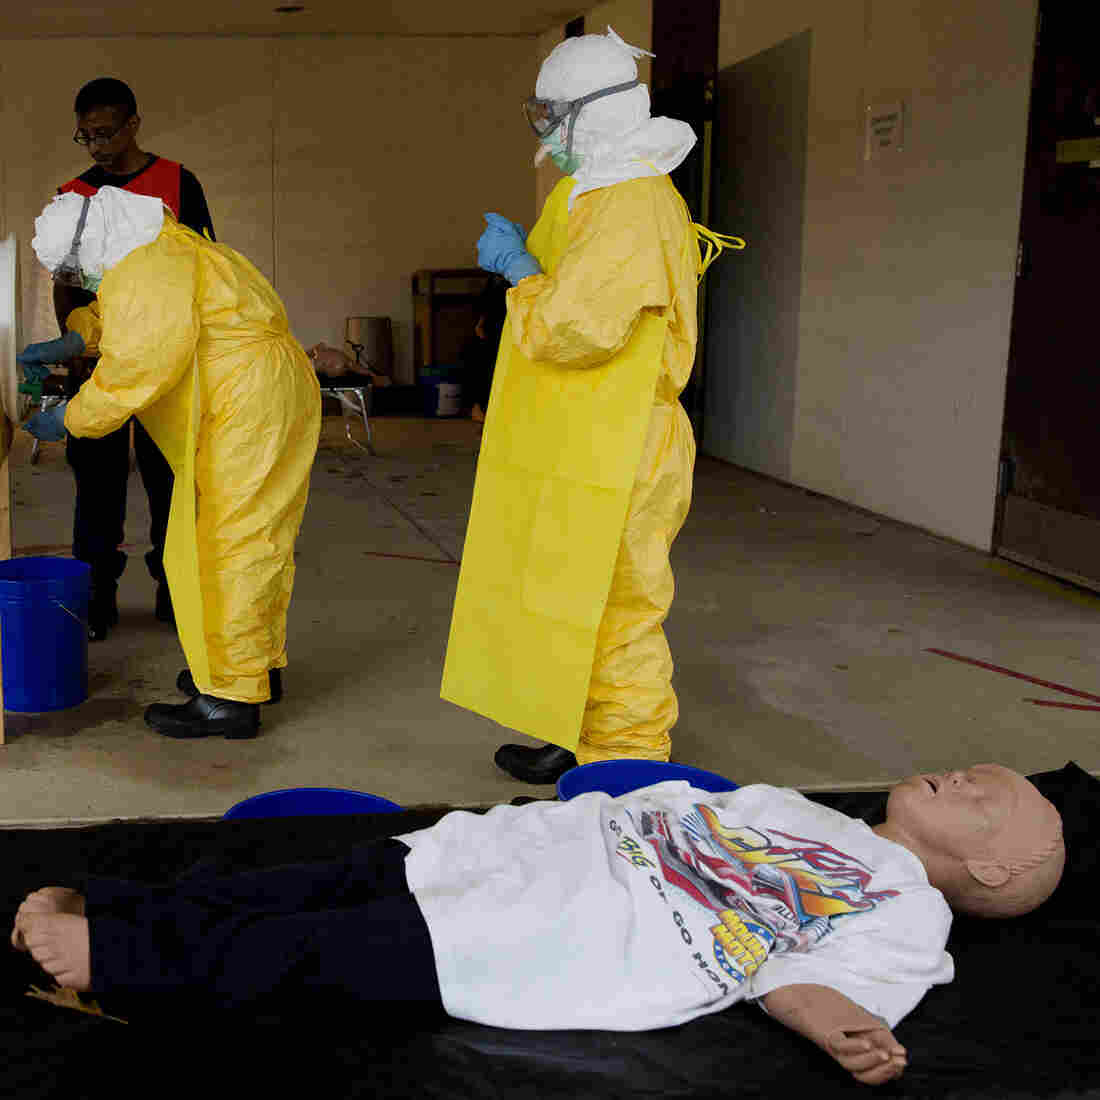 Lessons From Ebola School: How To Draw Blood, Wipe Up Vomit